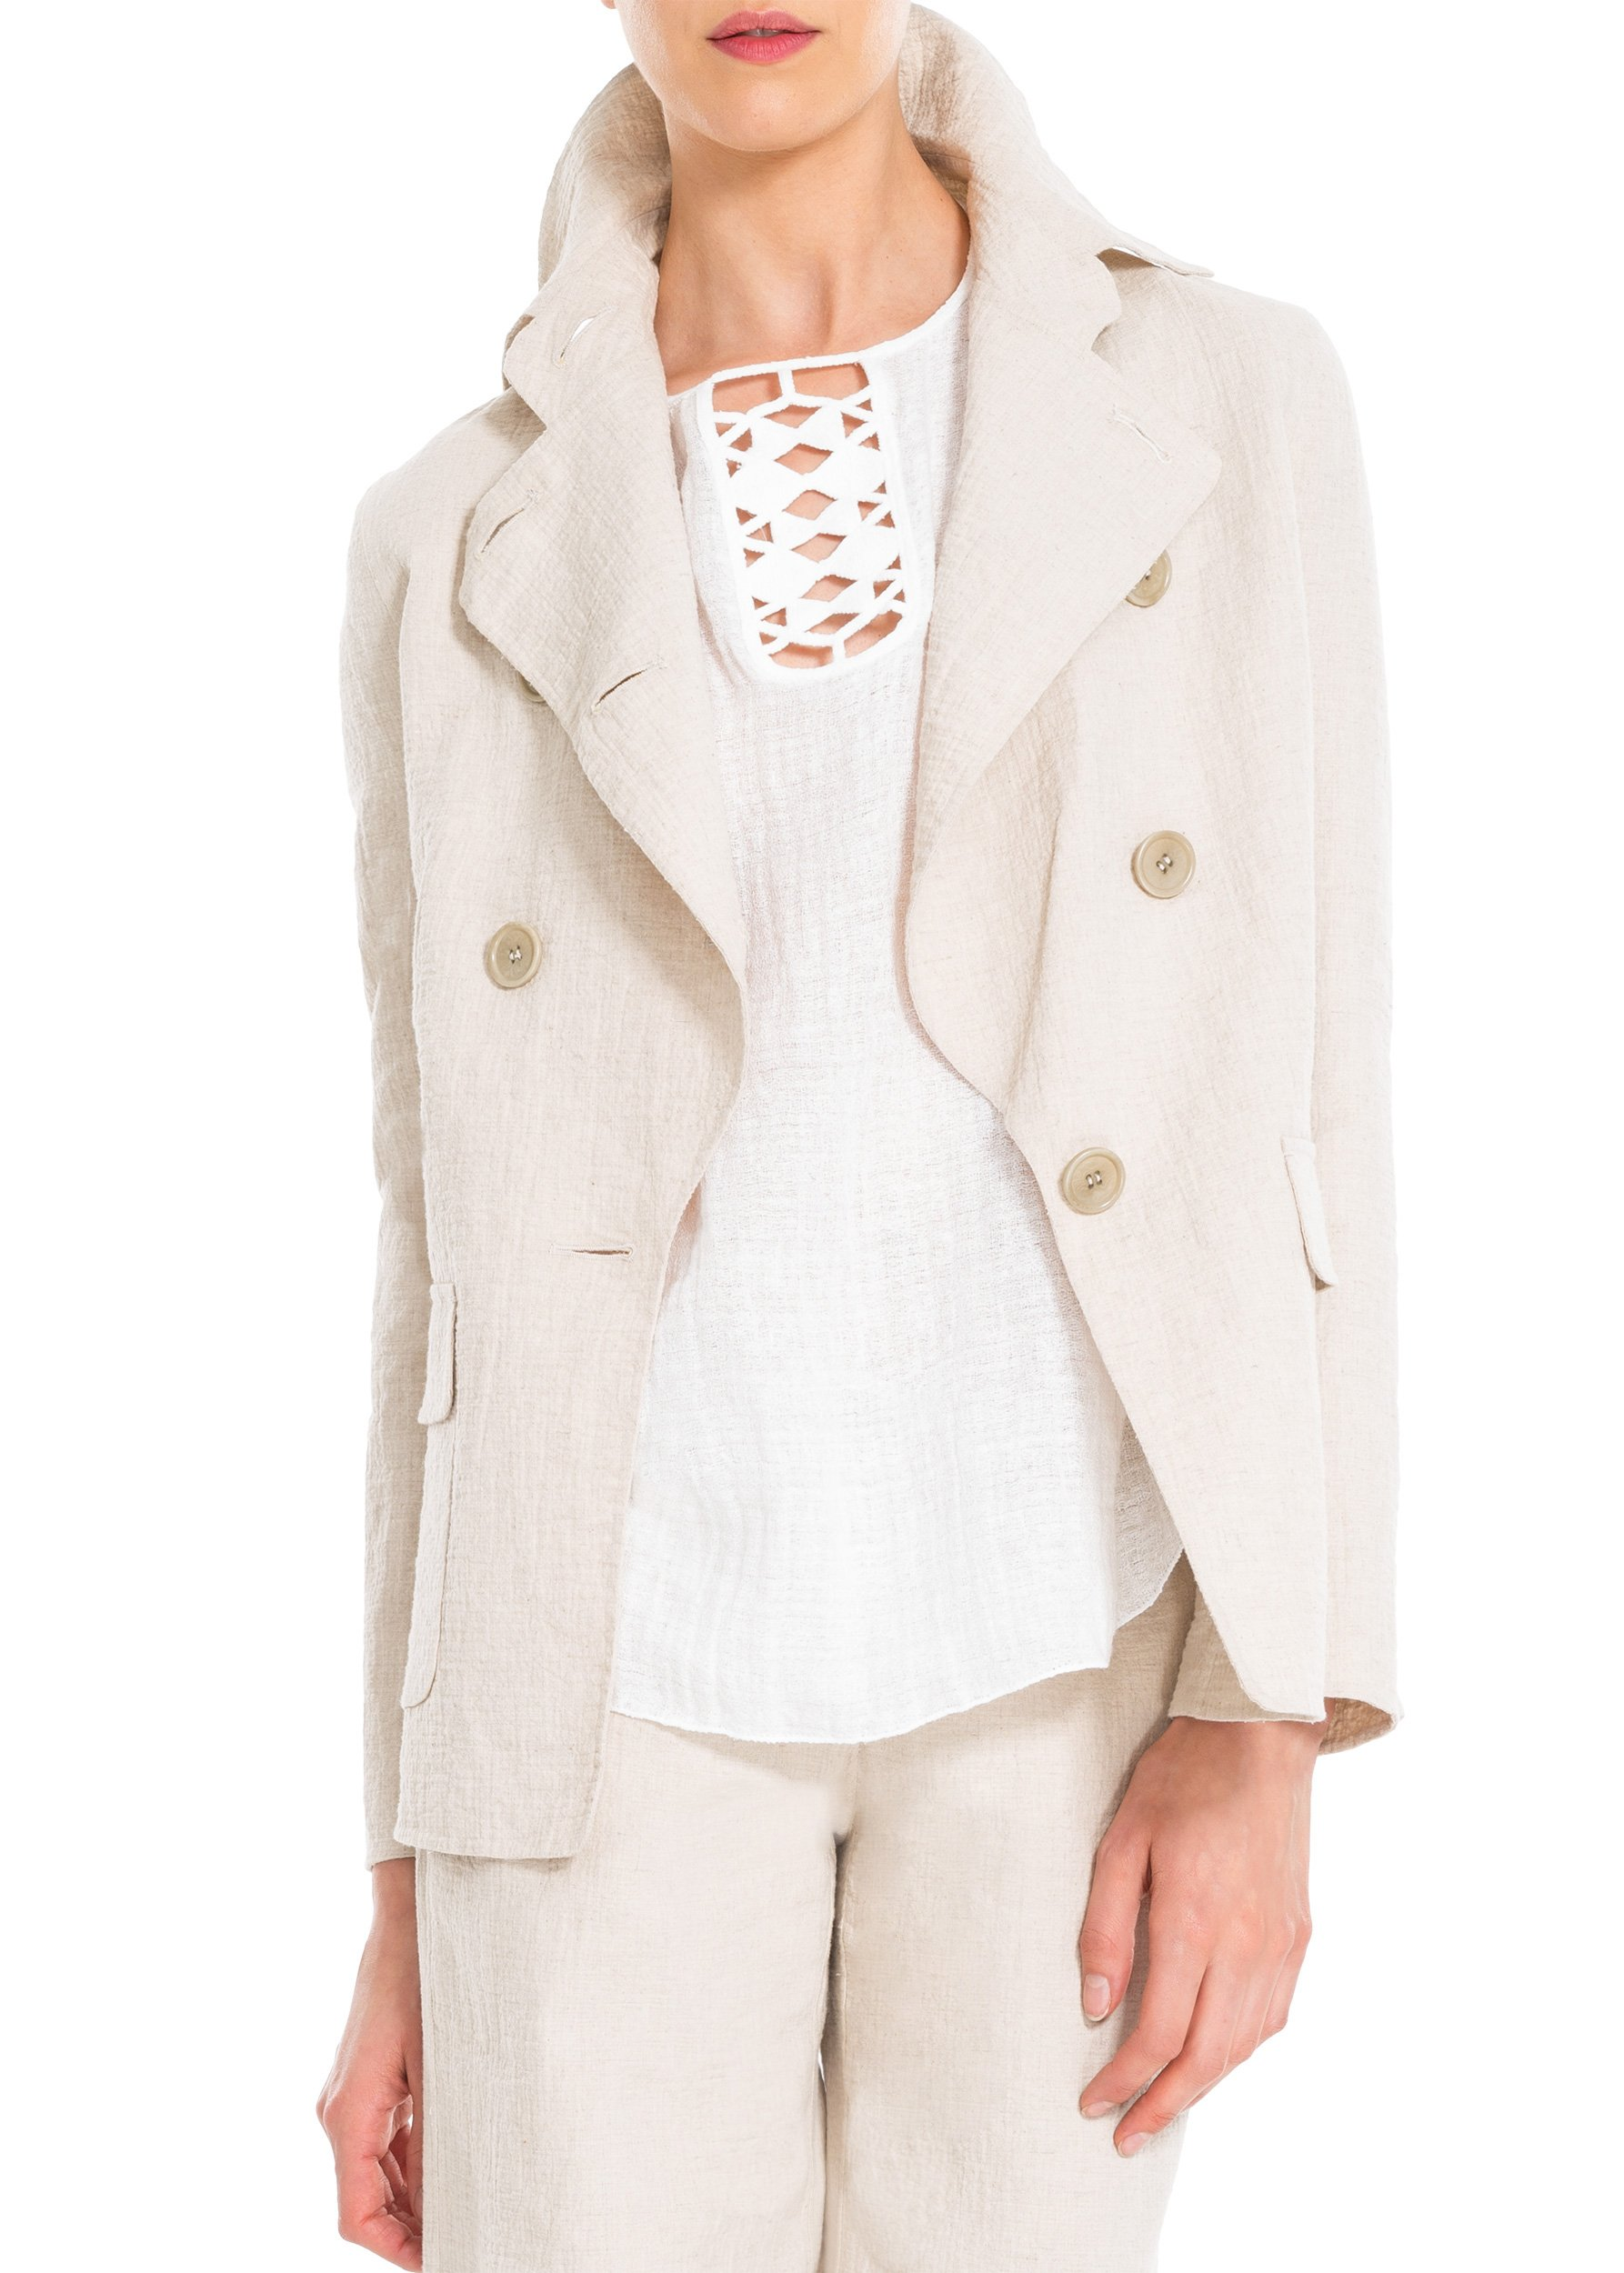 Cotton And Linen Doubleweave Jacket - 6203E64-KHAKI-S by MAXSTUDIO